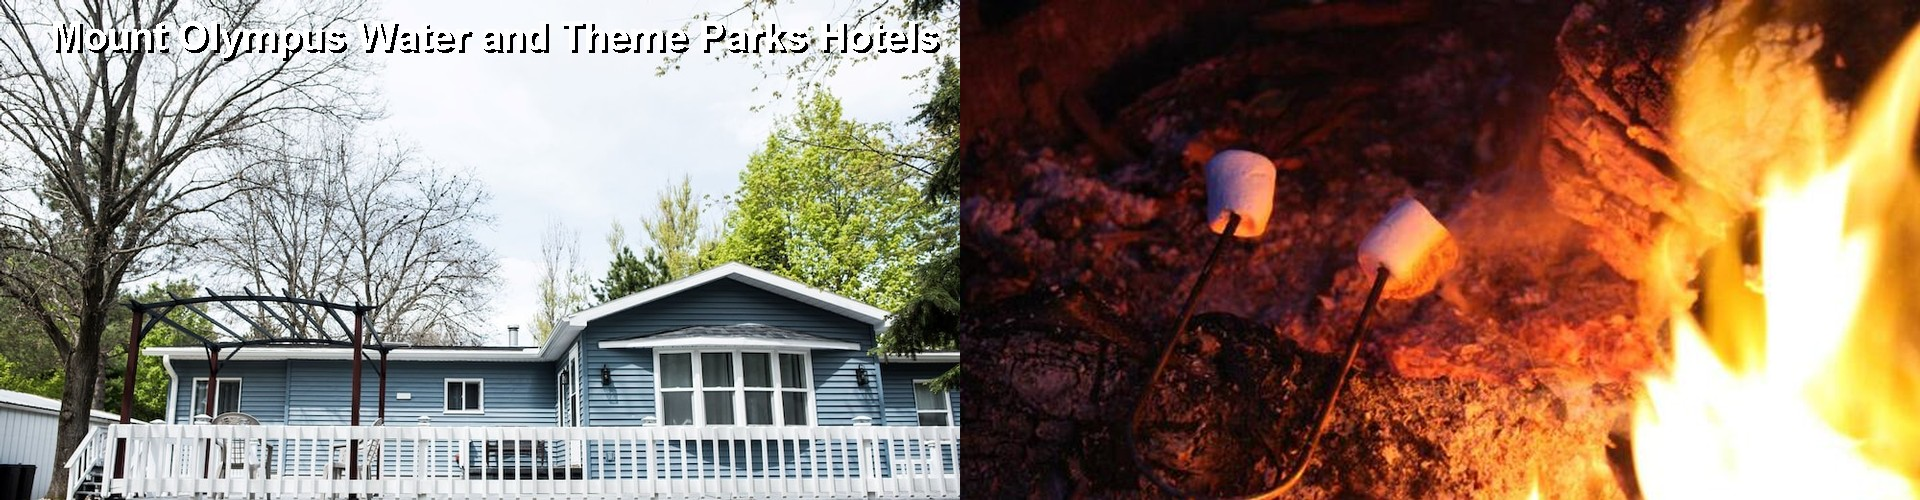 5 Best Hotels near Mount Olympus Water and Theme Parks